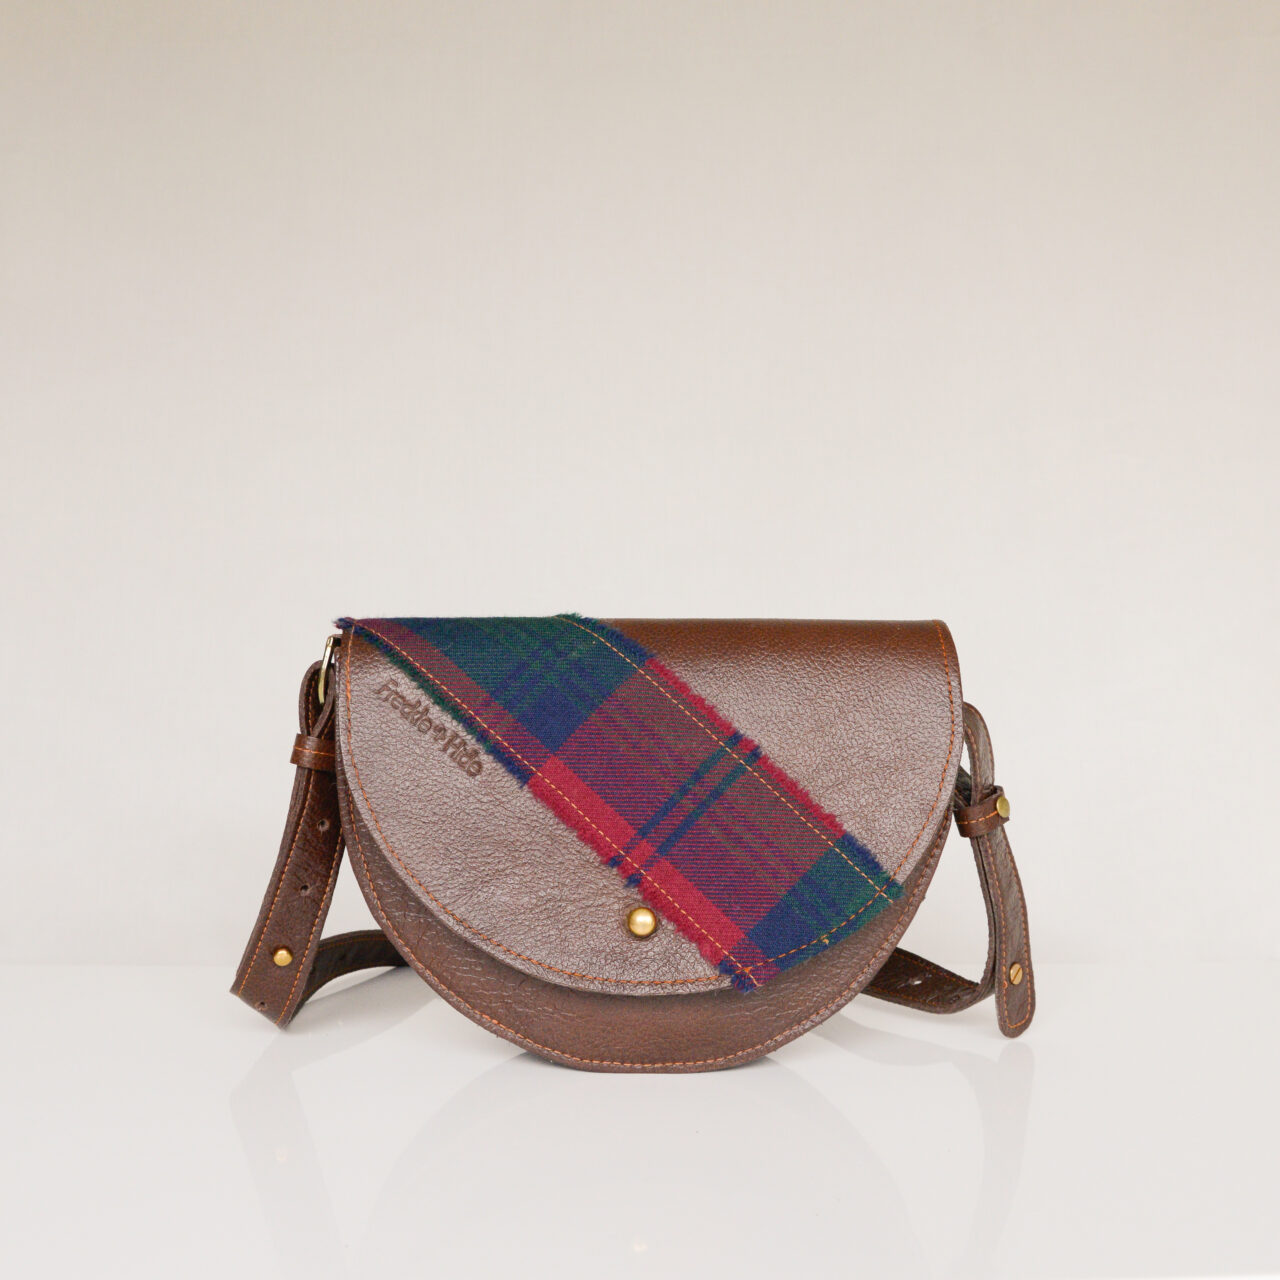 Unique brown bag made from upcycled leather with tartan across flap and on strap